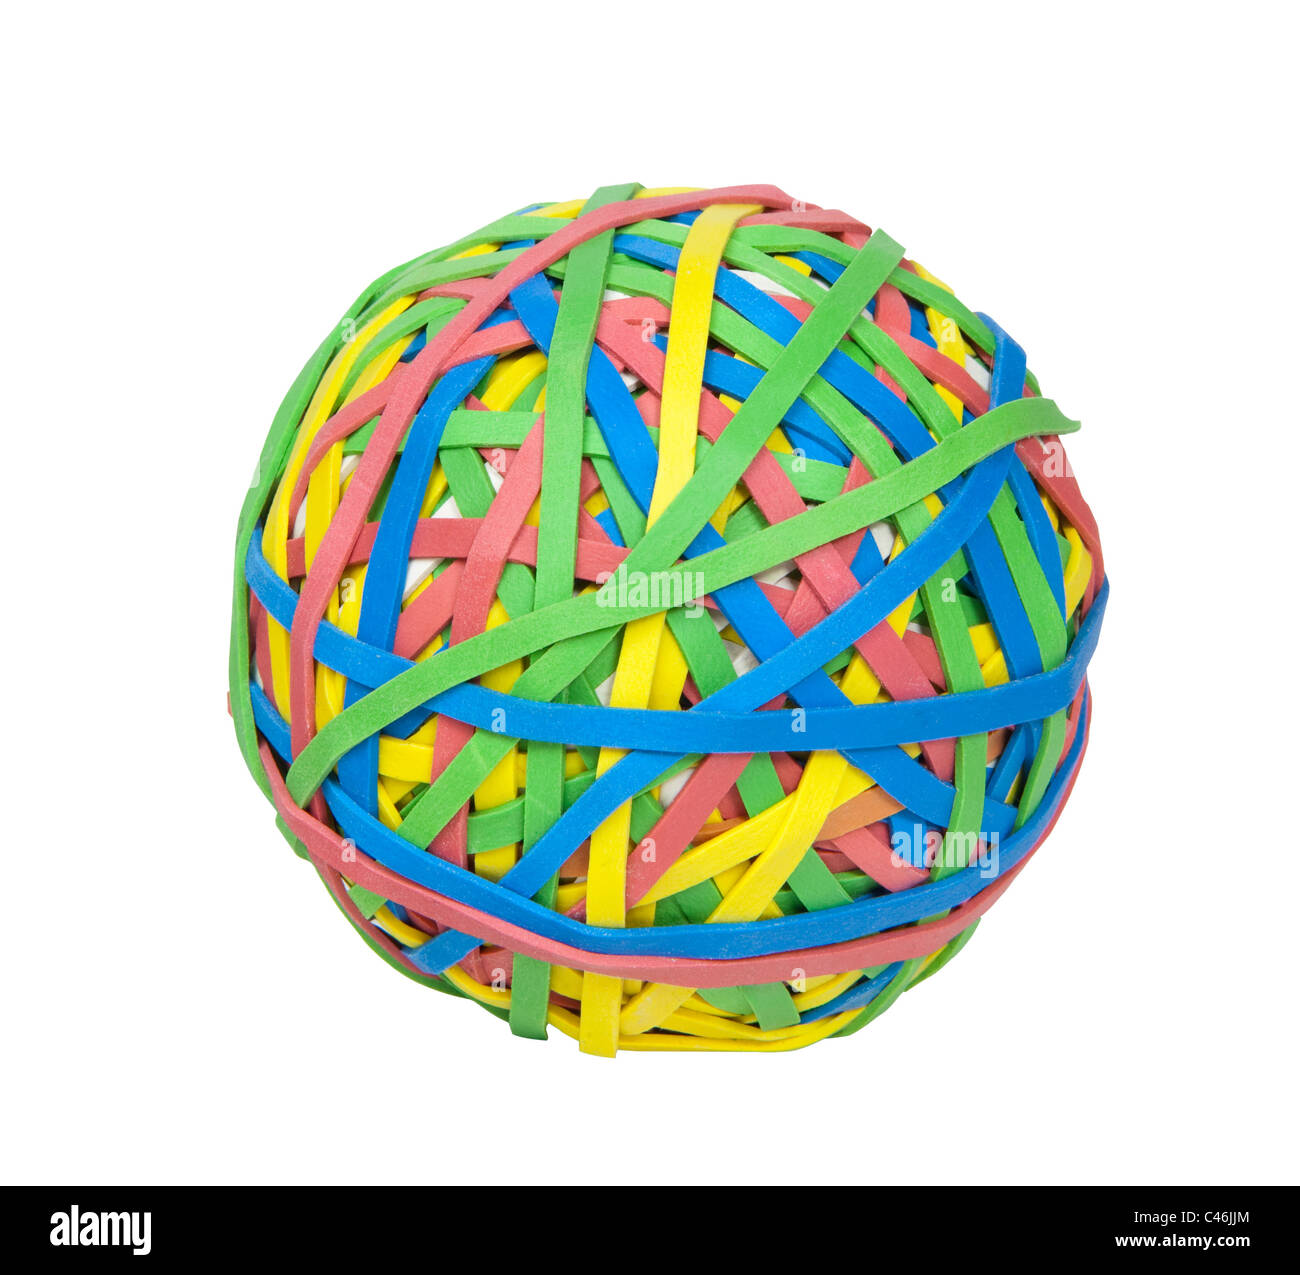 Multi-colored ball of rubber bands, includes clipping path - Stock Image